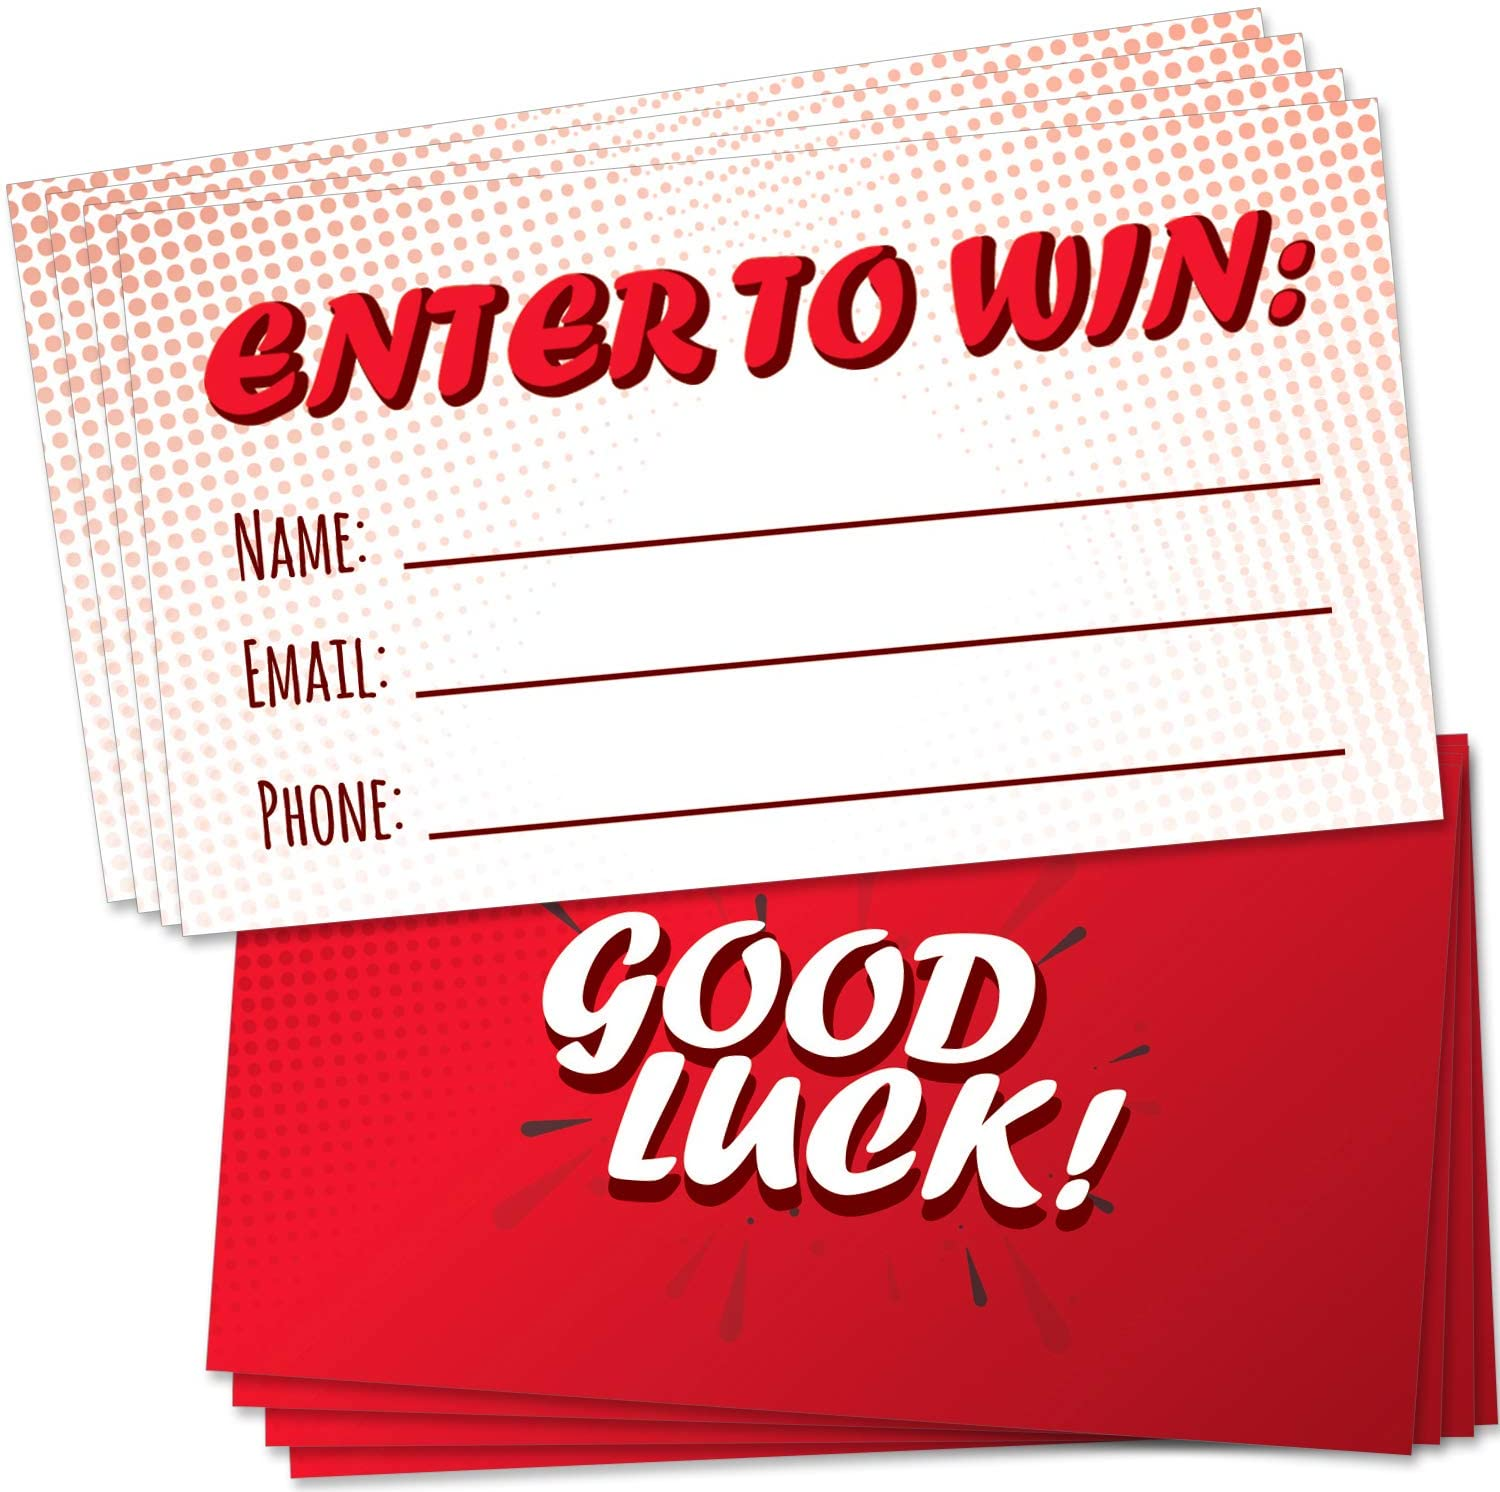 """200 Raffle Tickets 3.5""""x2"""" - Enter to Win Entry Form Cards for Giveaway Contest, Raffles, Ballot Box, 50/50, Auction and More - with Space for Name, Email Address and Phone Number Fields"""